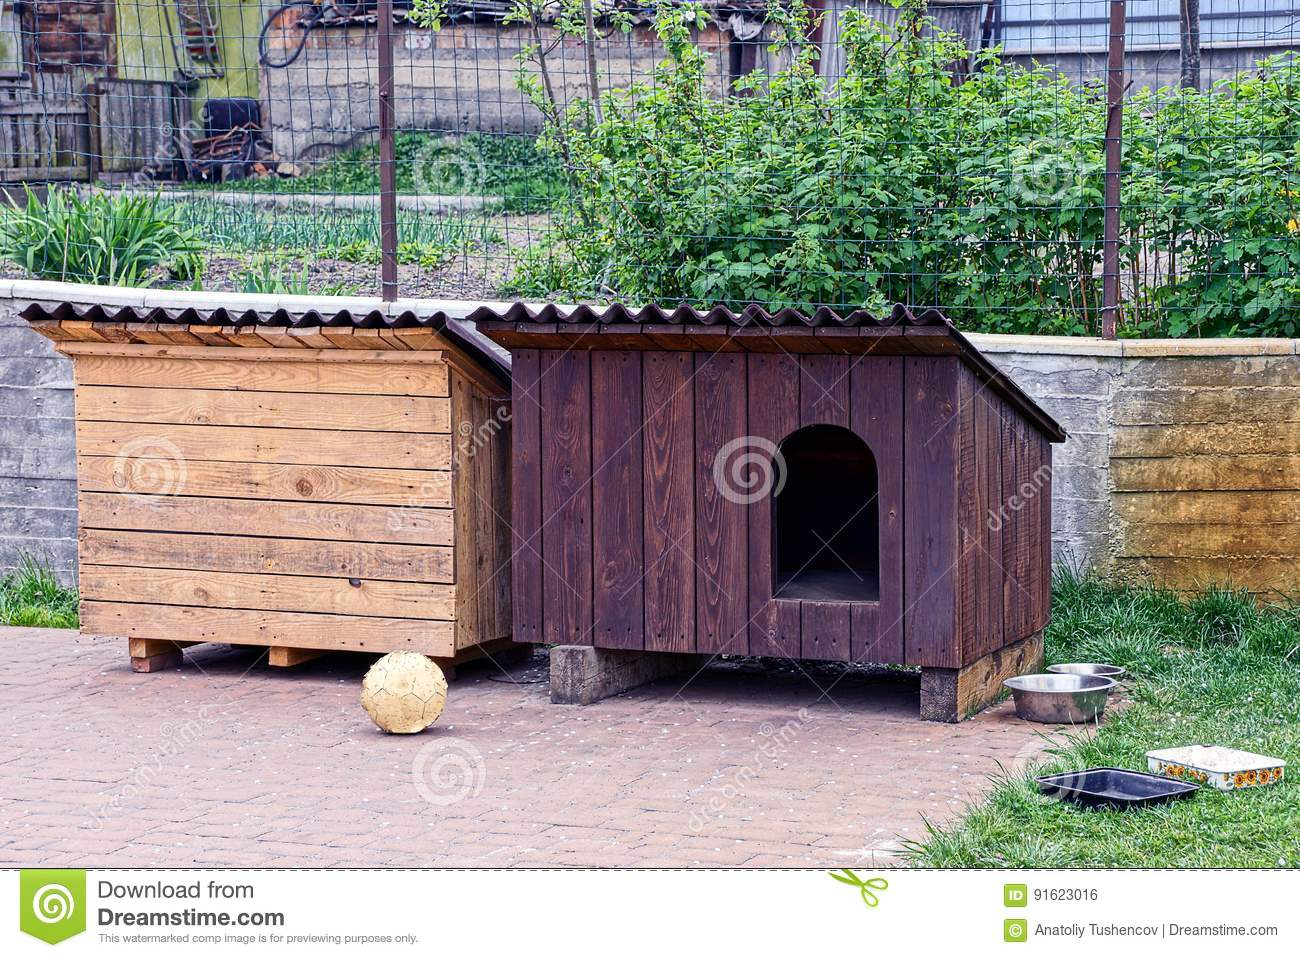 Two dog house booths in the yard